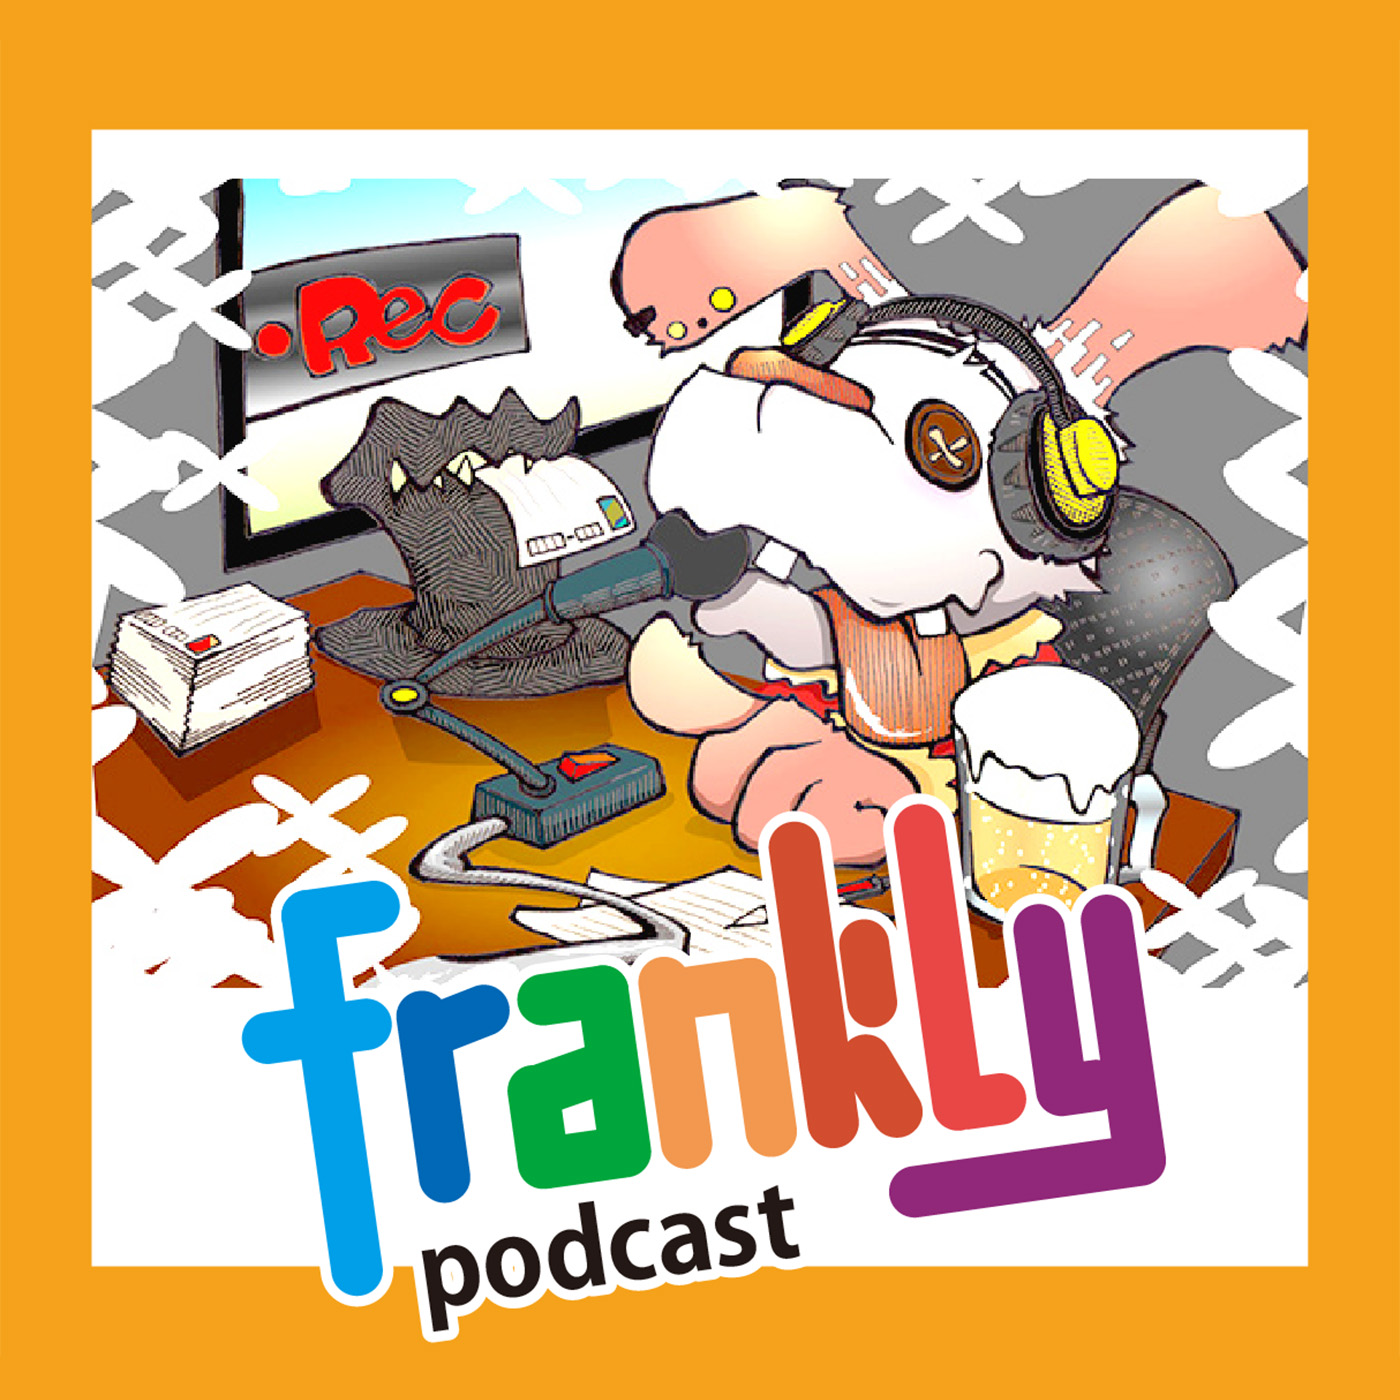 frankly podcast.